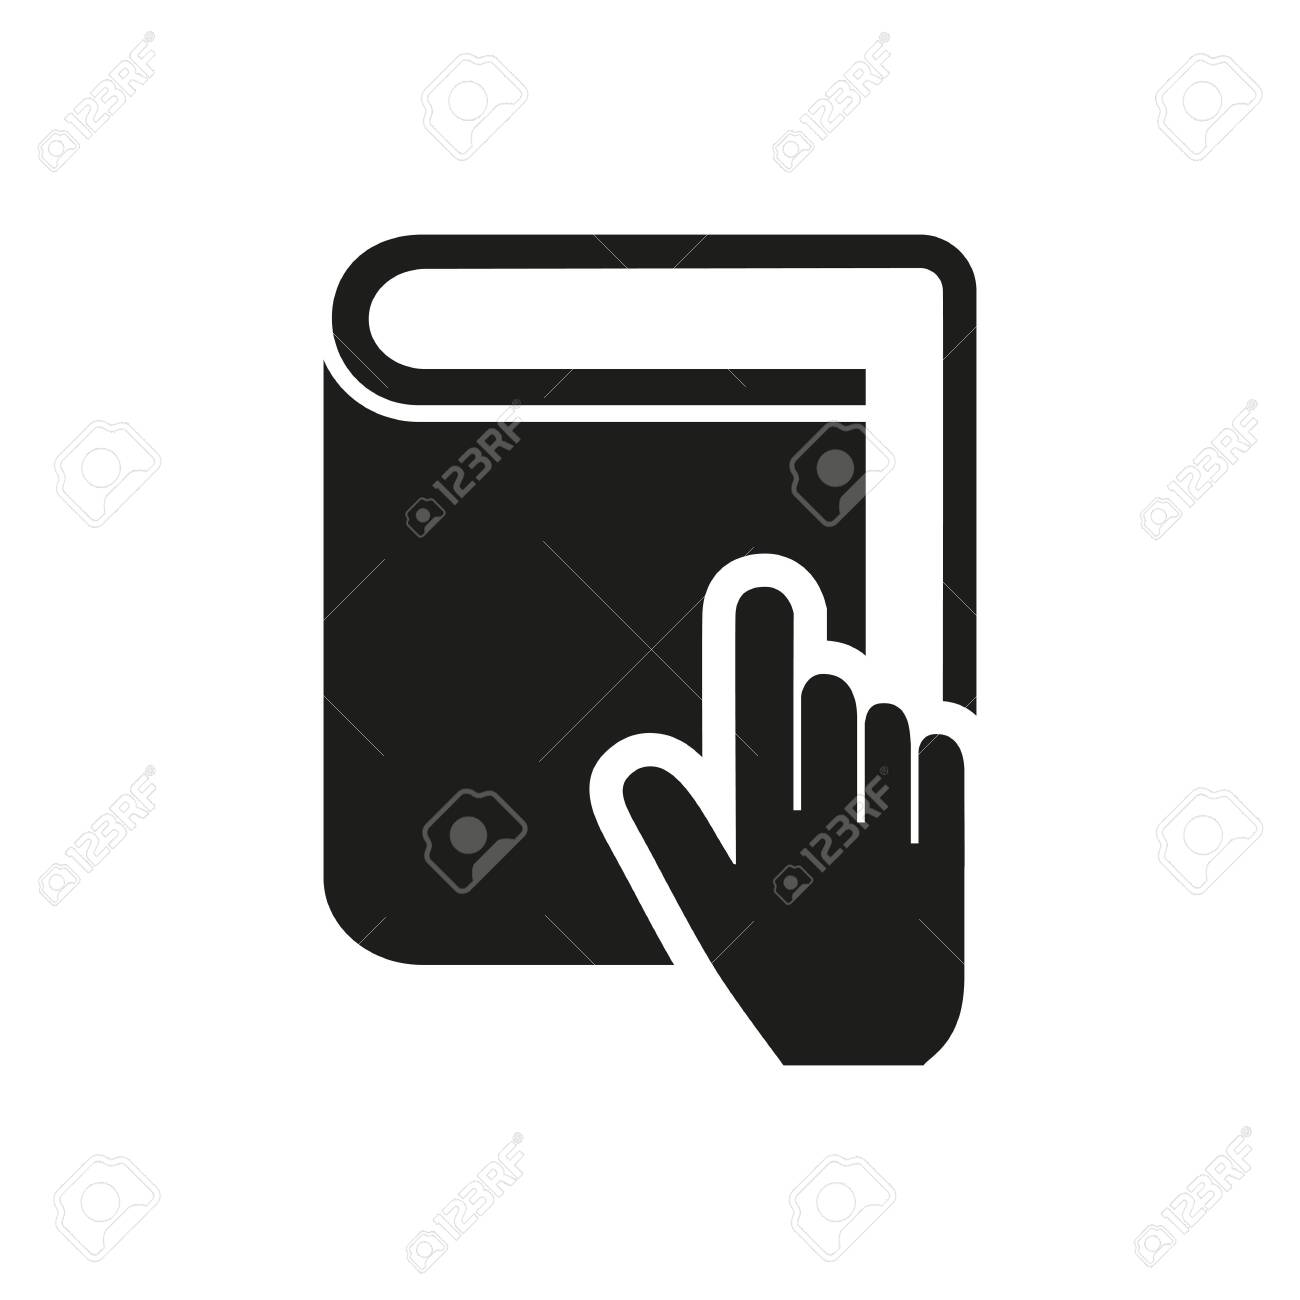 simple icon of hand pointing at book cursor choice reference stock photo picture and royalty free image image 148145465 123rf com